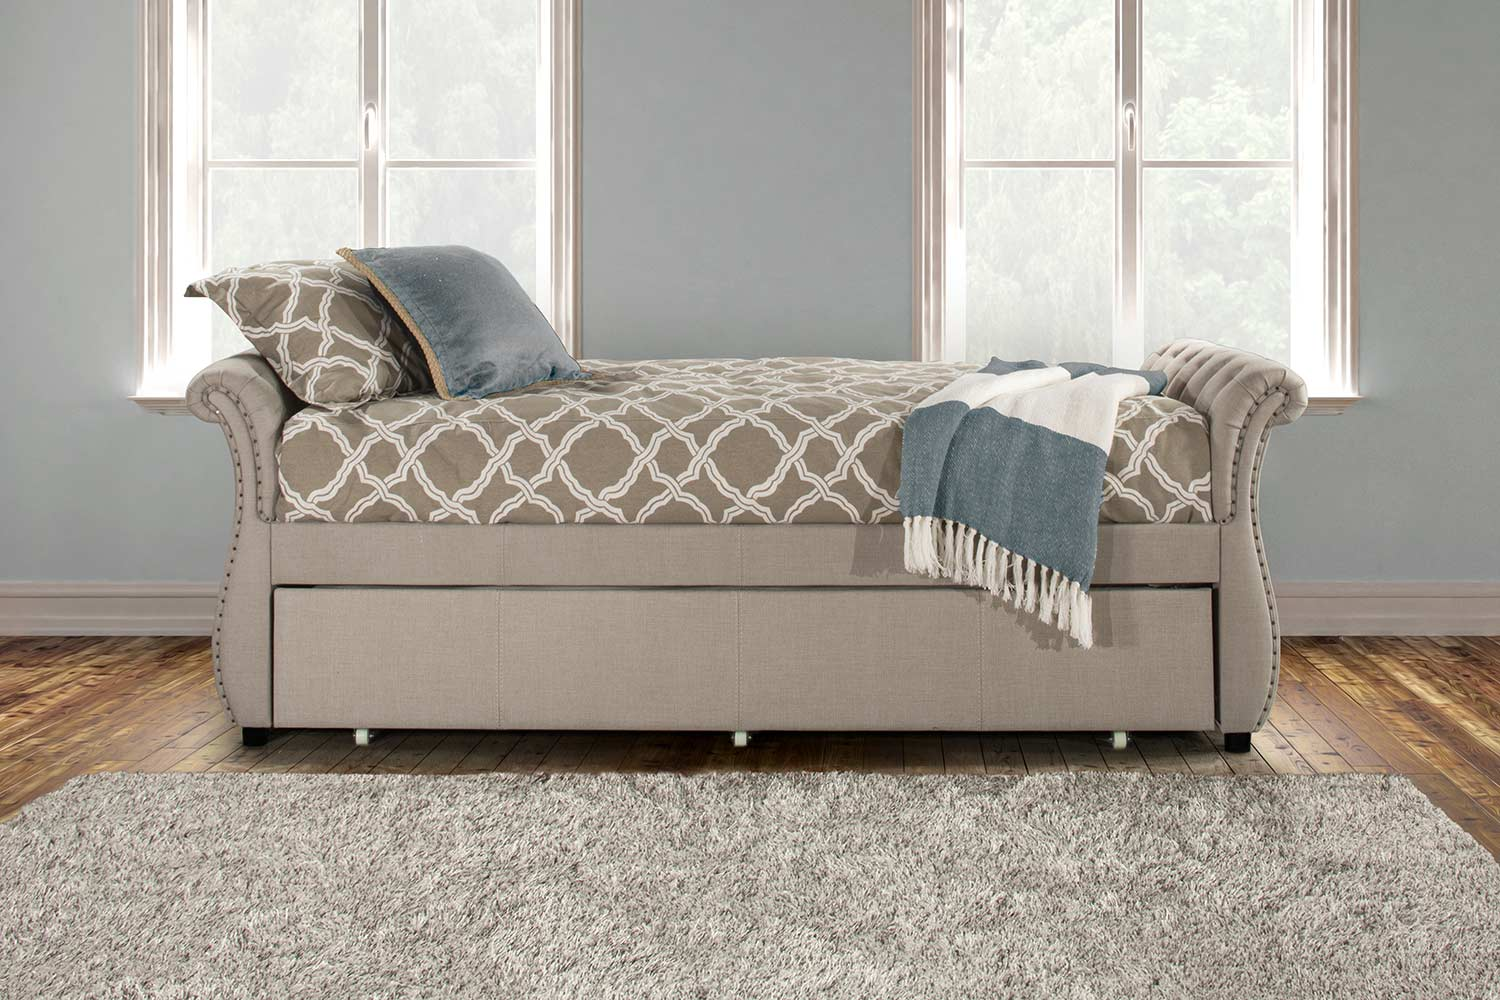 Hillsdale Hunter Backless Daybed with Trundle - Linen Sandstone